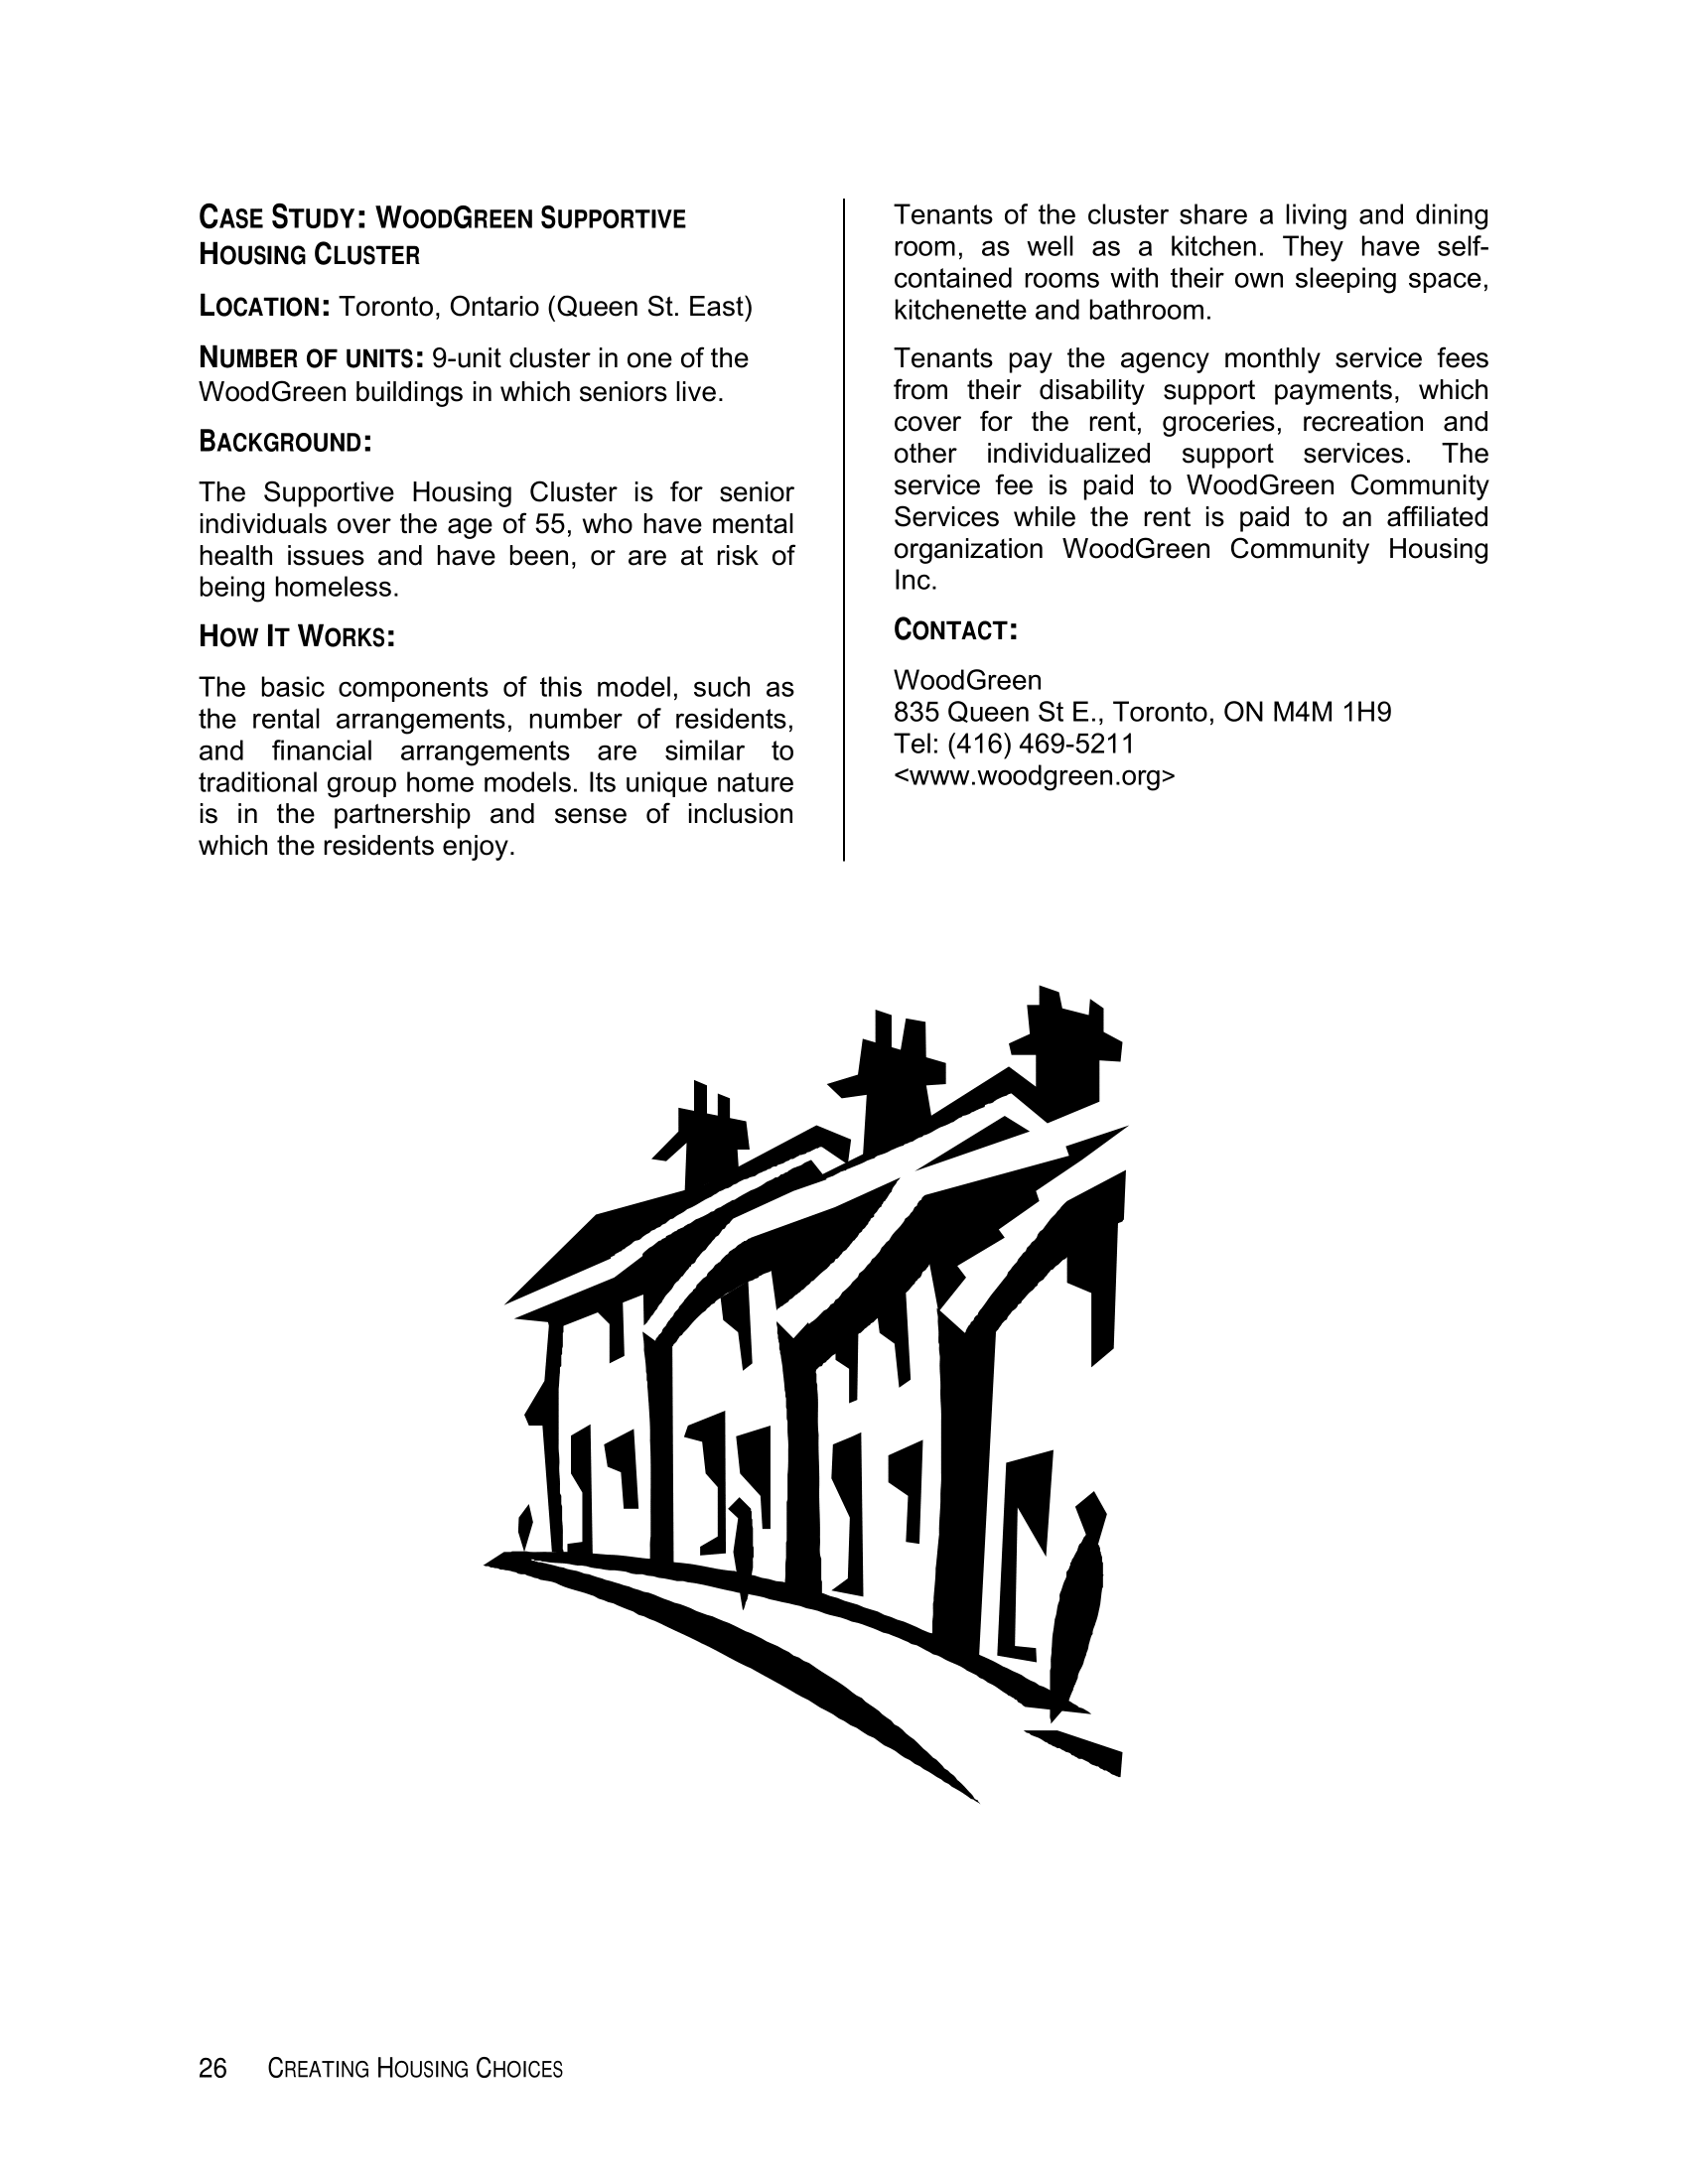 Creating Housing Choices - 2006-27.png